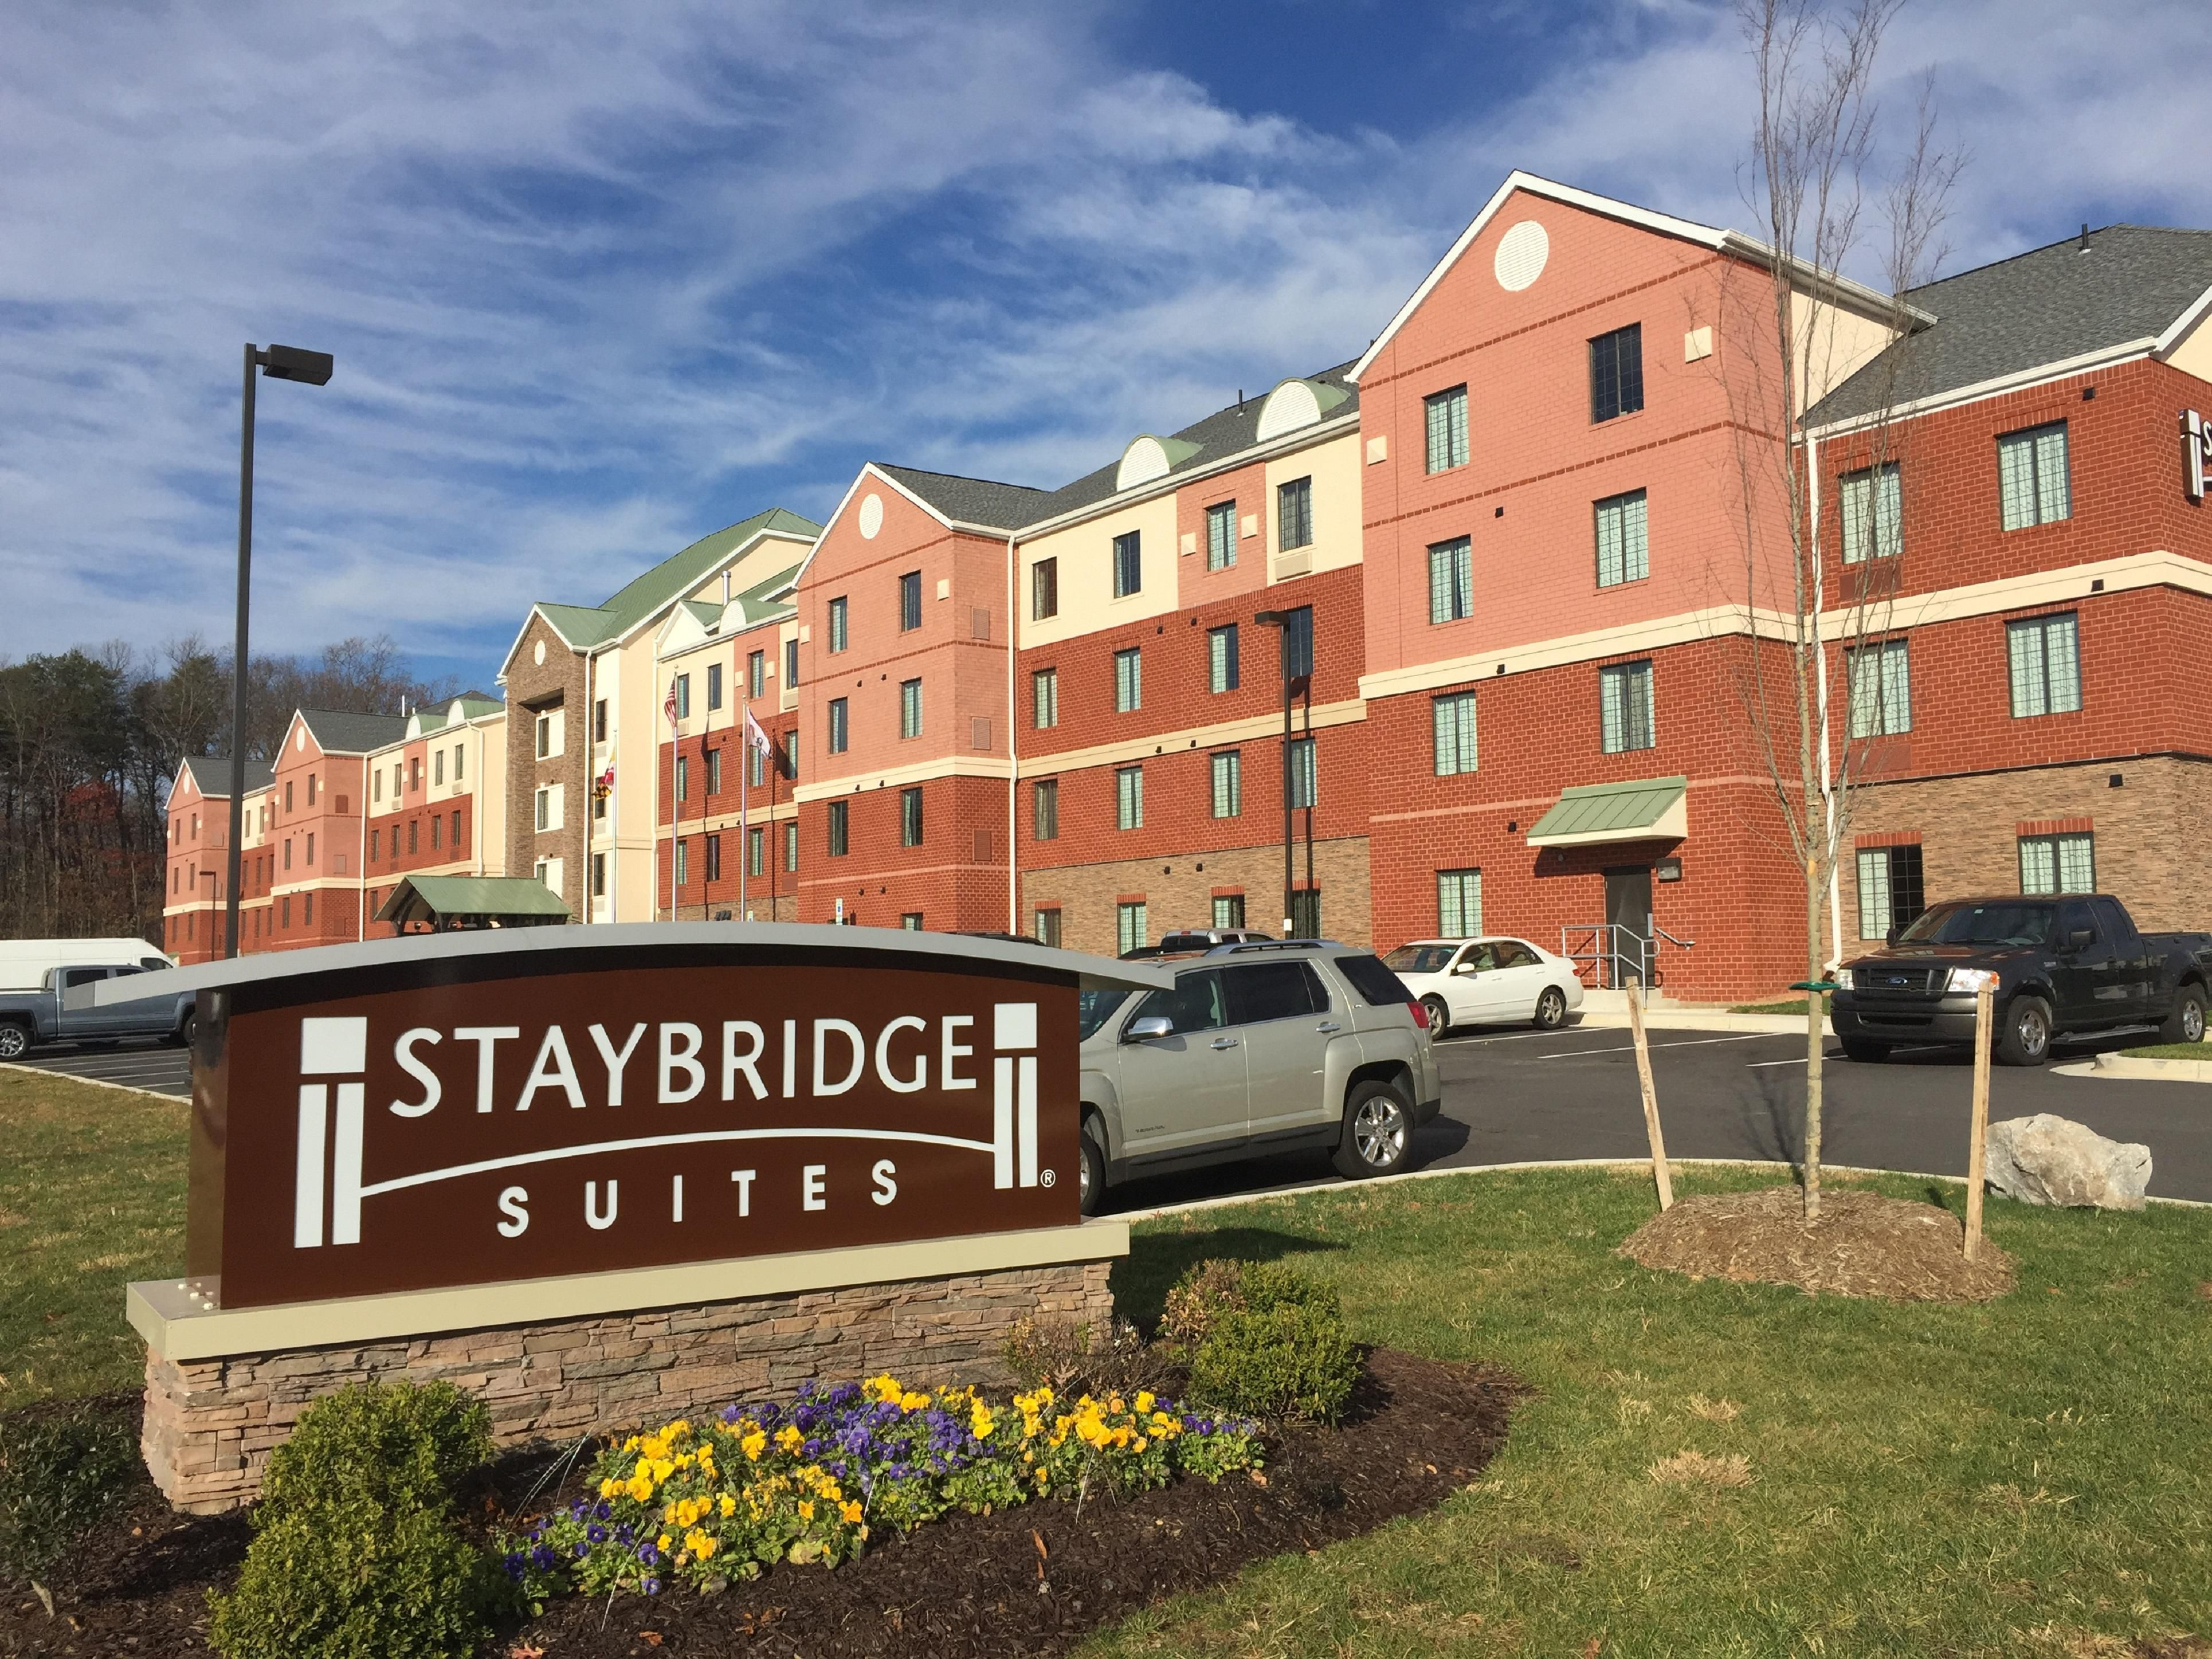 Lanham Hotels Staybridge Suites Extended Stay Hotel In Maryland